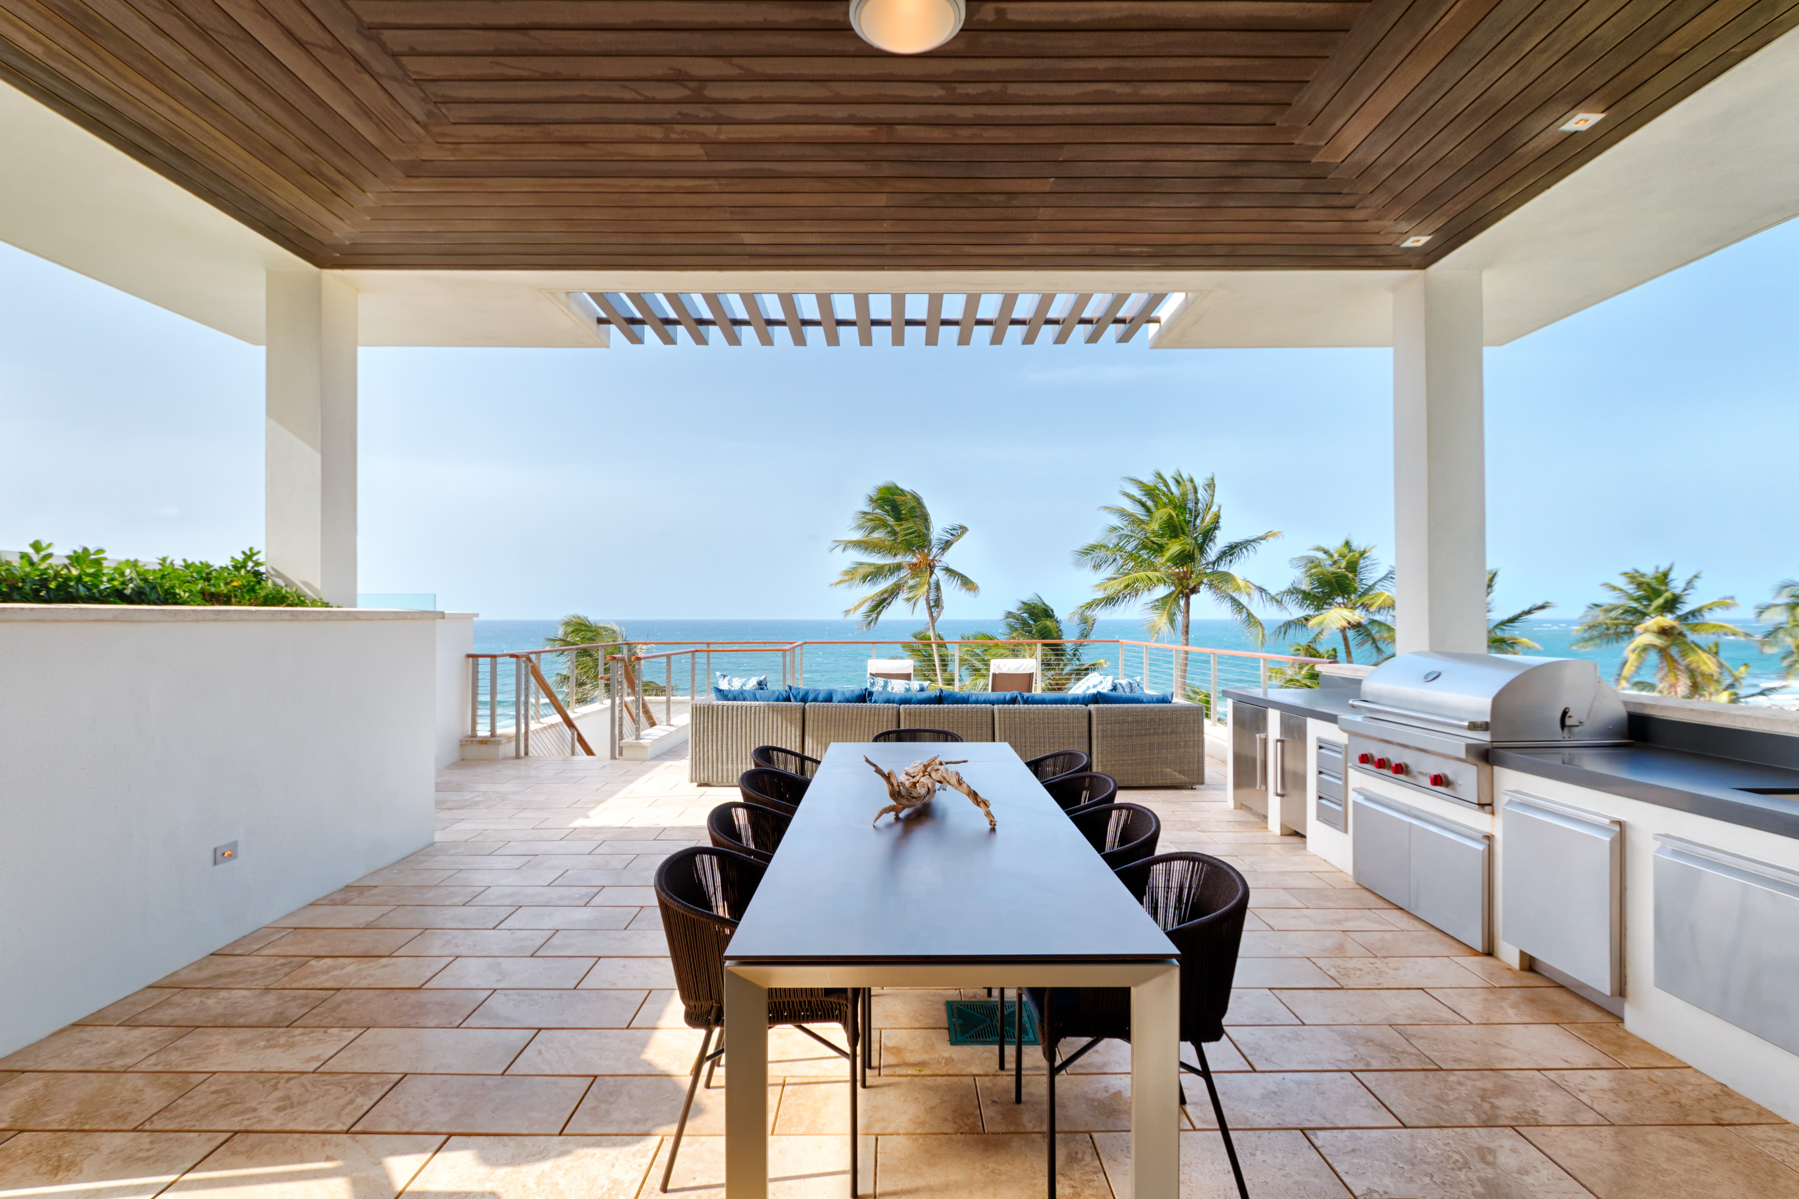 Additional photo for property listing at Branded Beachfront Penthouse 3641 200 Dorado Beach Drive Ritz Carlton Reserve Dorado Beach, 00646 Puerto Rico